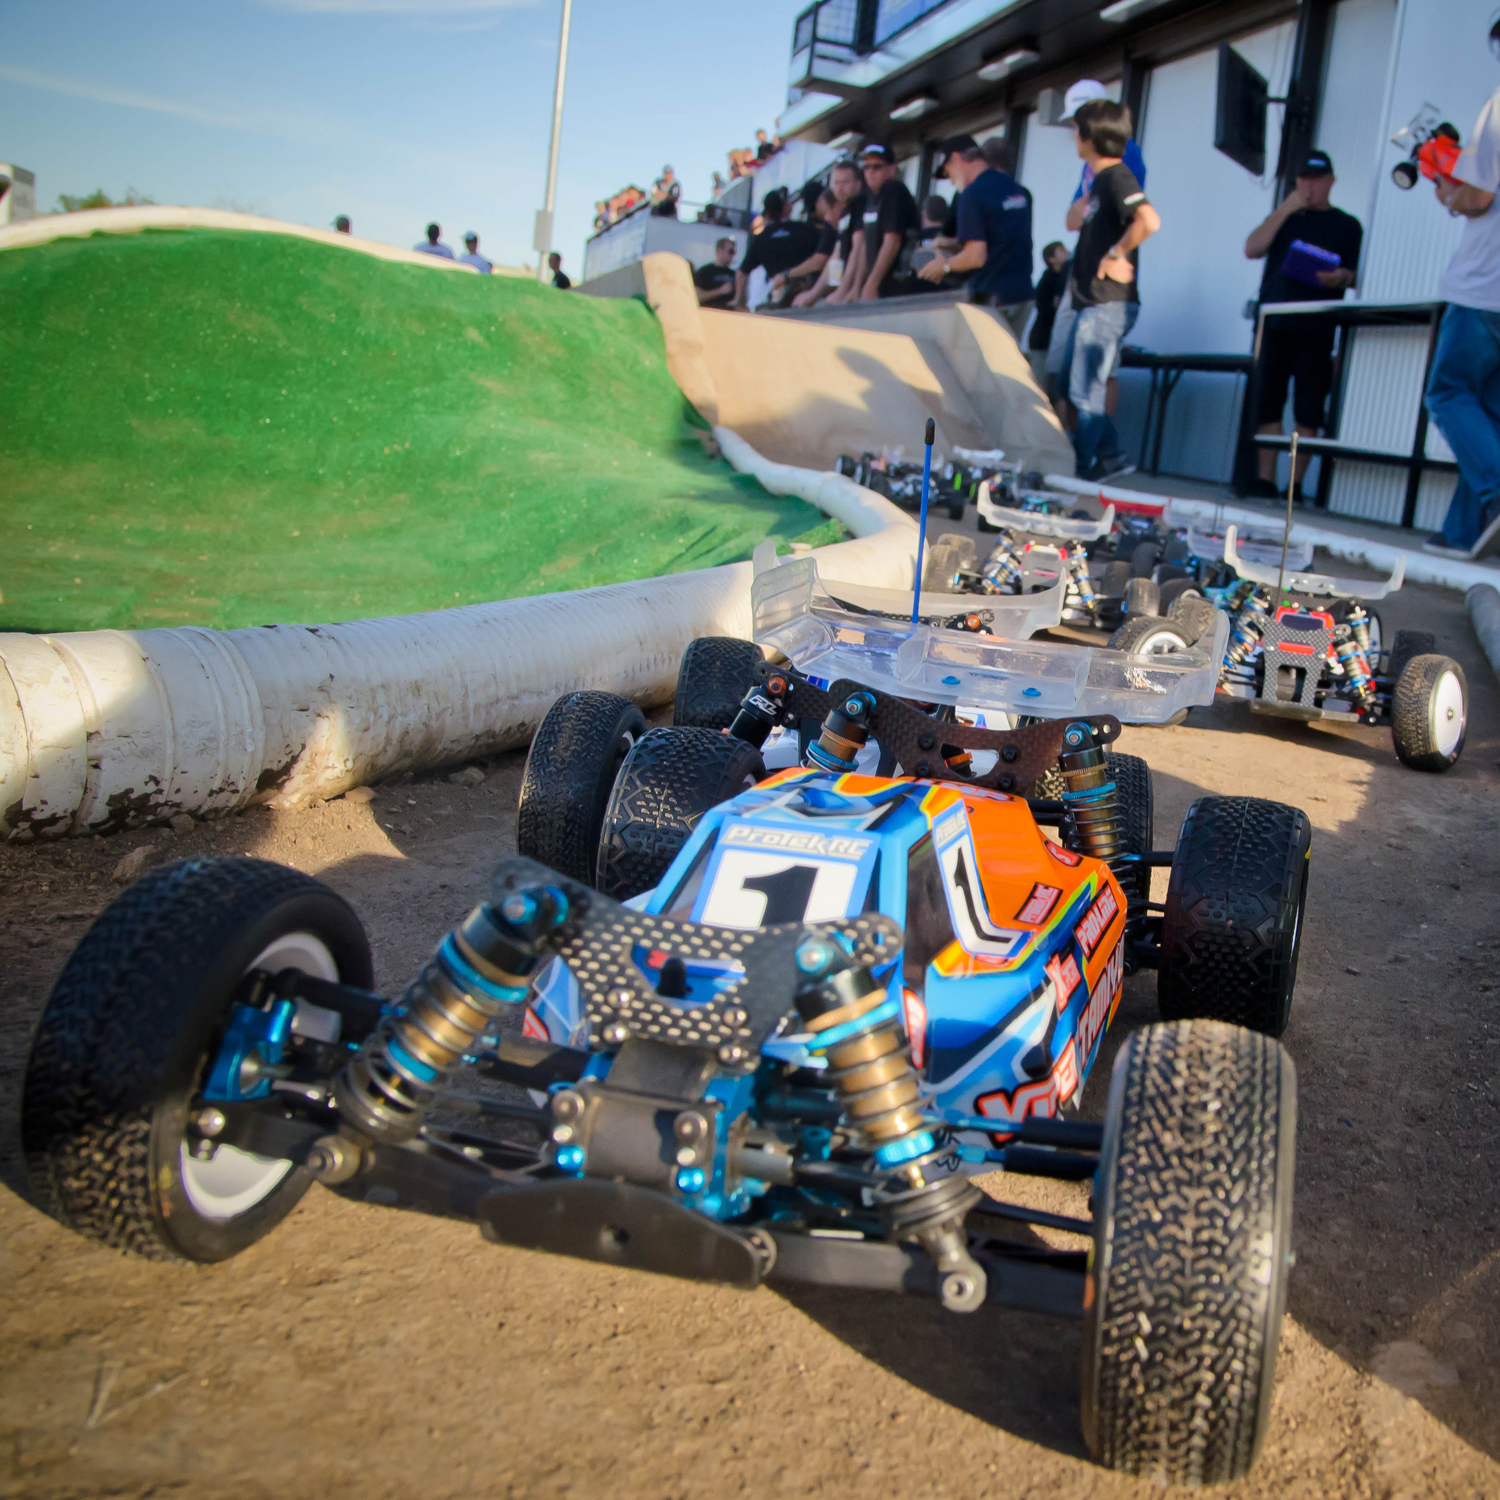 IFMAR Worlds Video Update: Drivers Talk 4WD Practice